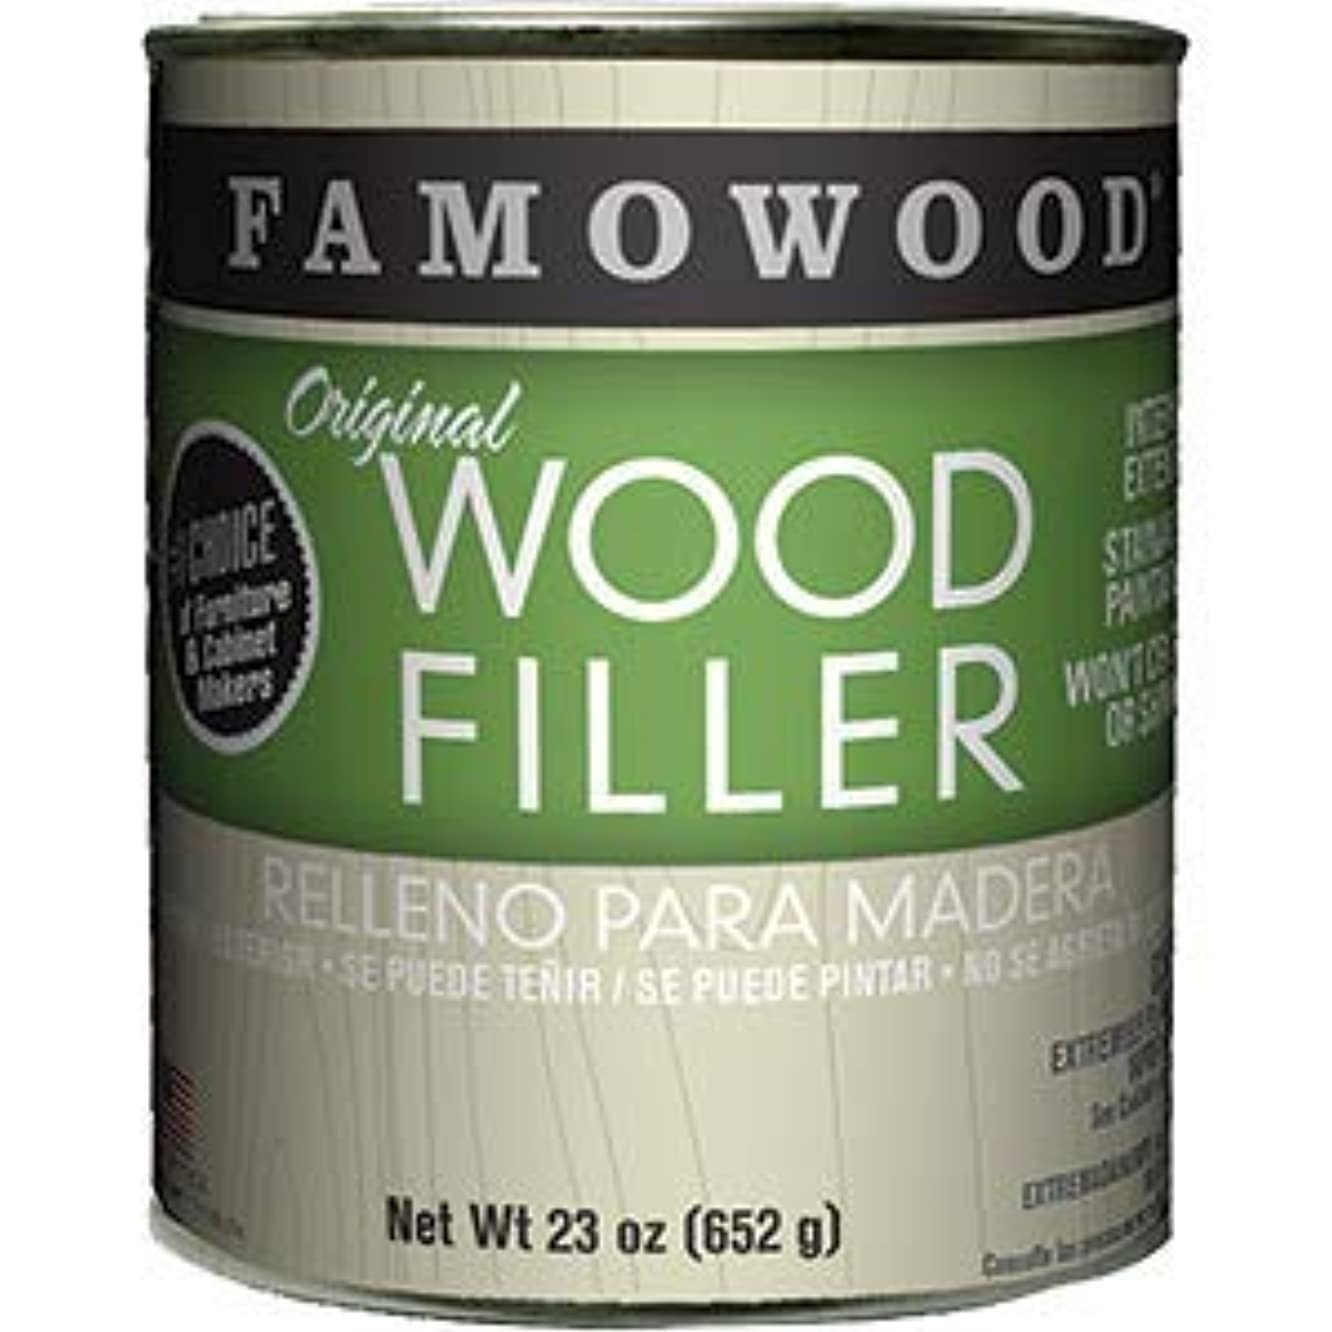 Eclectic Products Inc Famowood 36021142 Pt Walnut Wood Filler - 12ct. Case